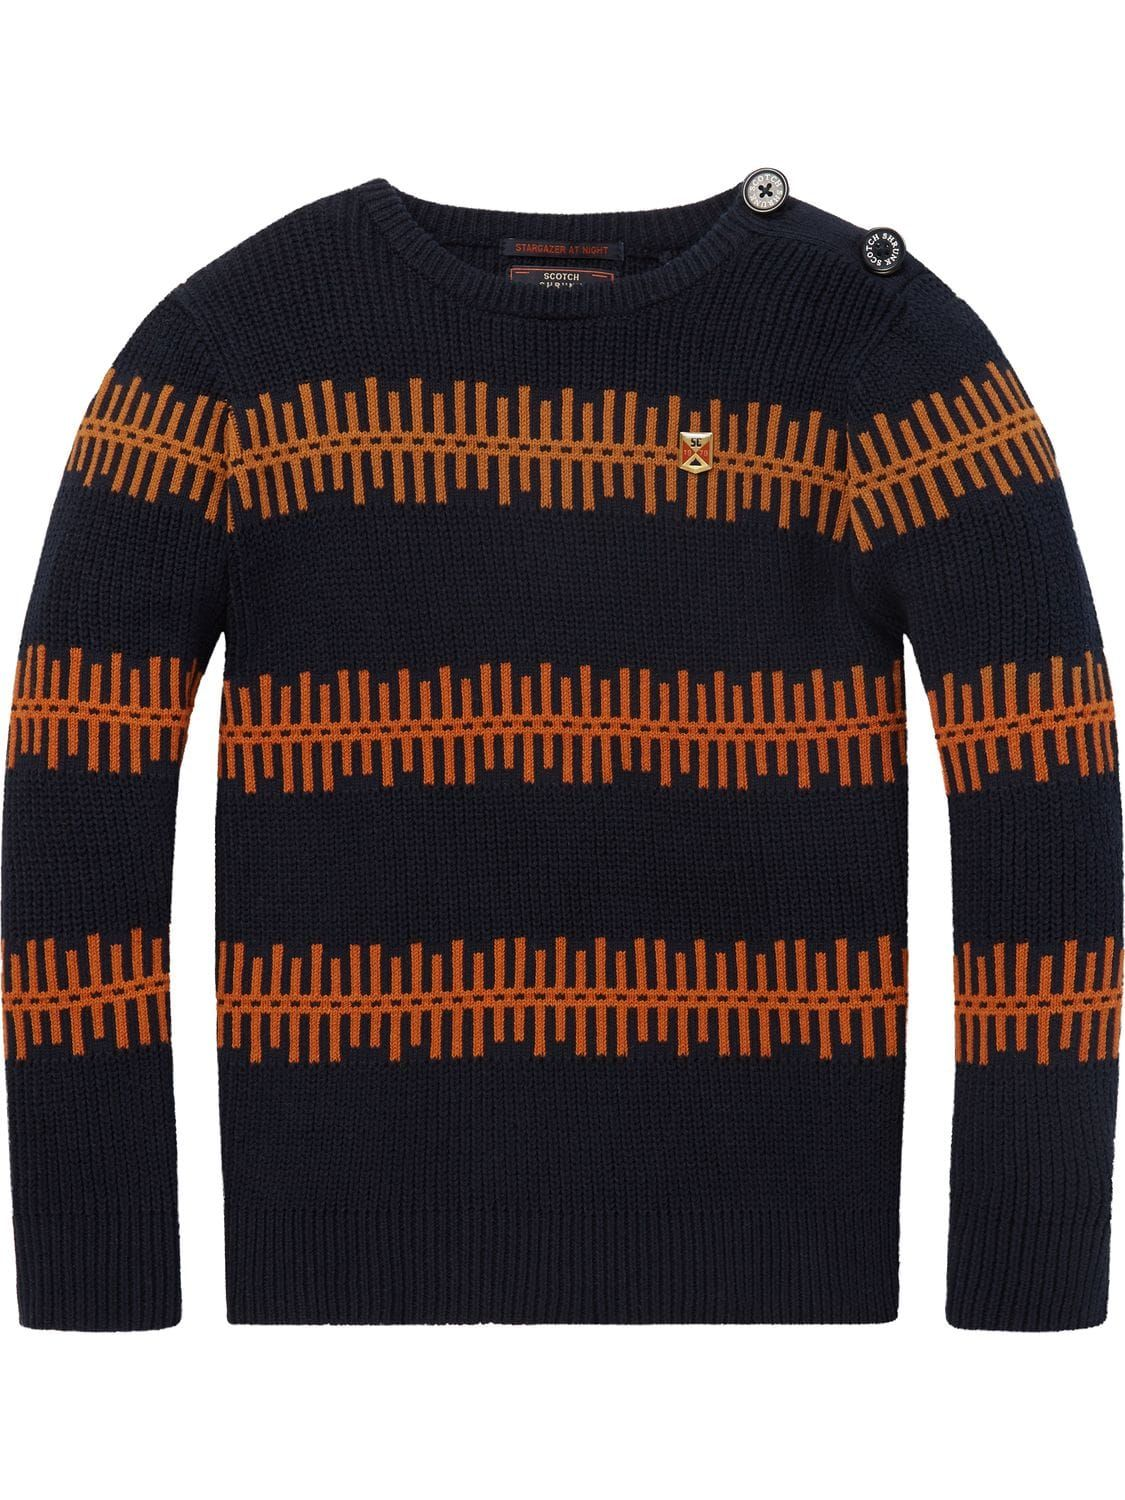 3cc29e0e0 Striped Sweater | Pullovers | Boys Clothing at Scotch & Soda | Style ...